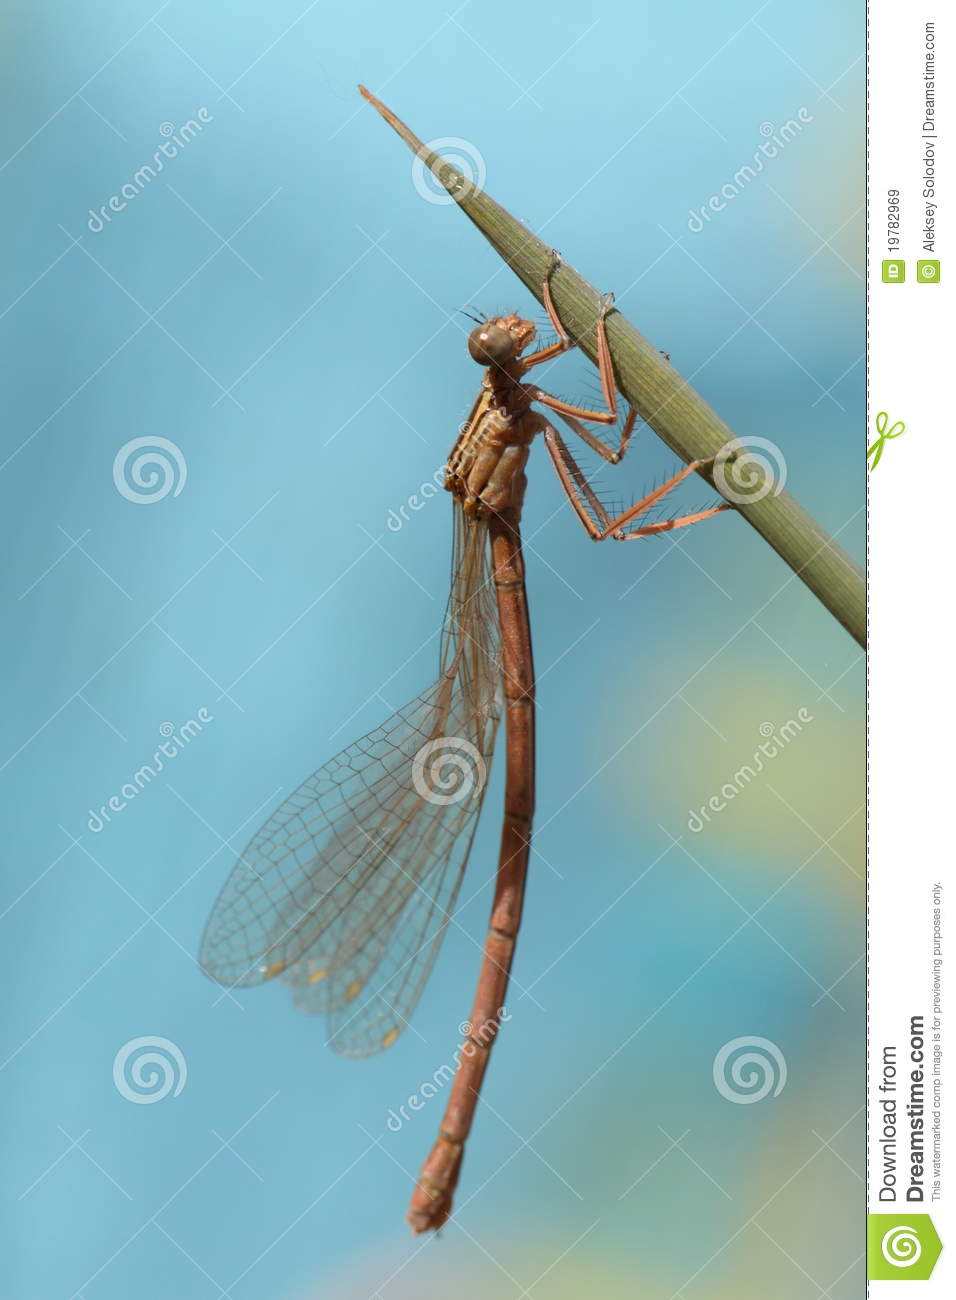 Dragonfly drying its young wings